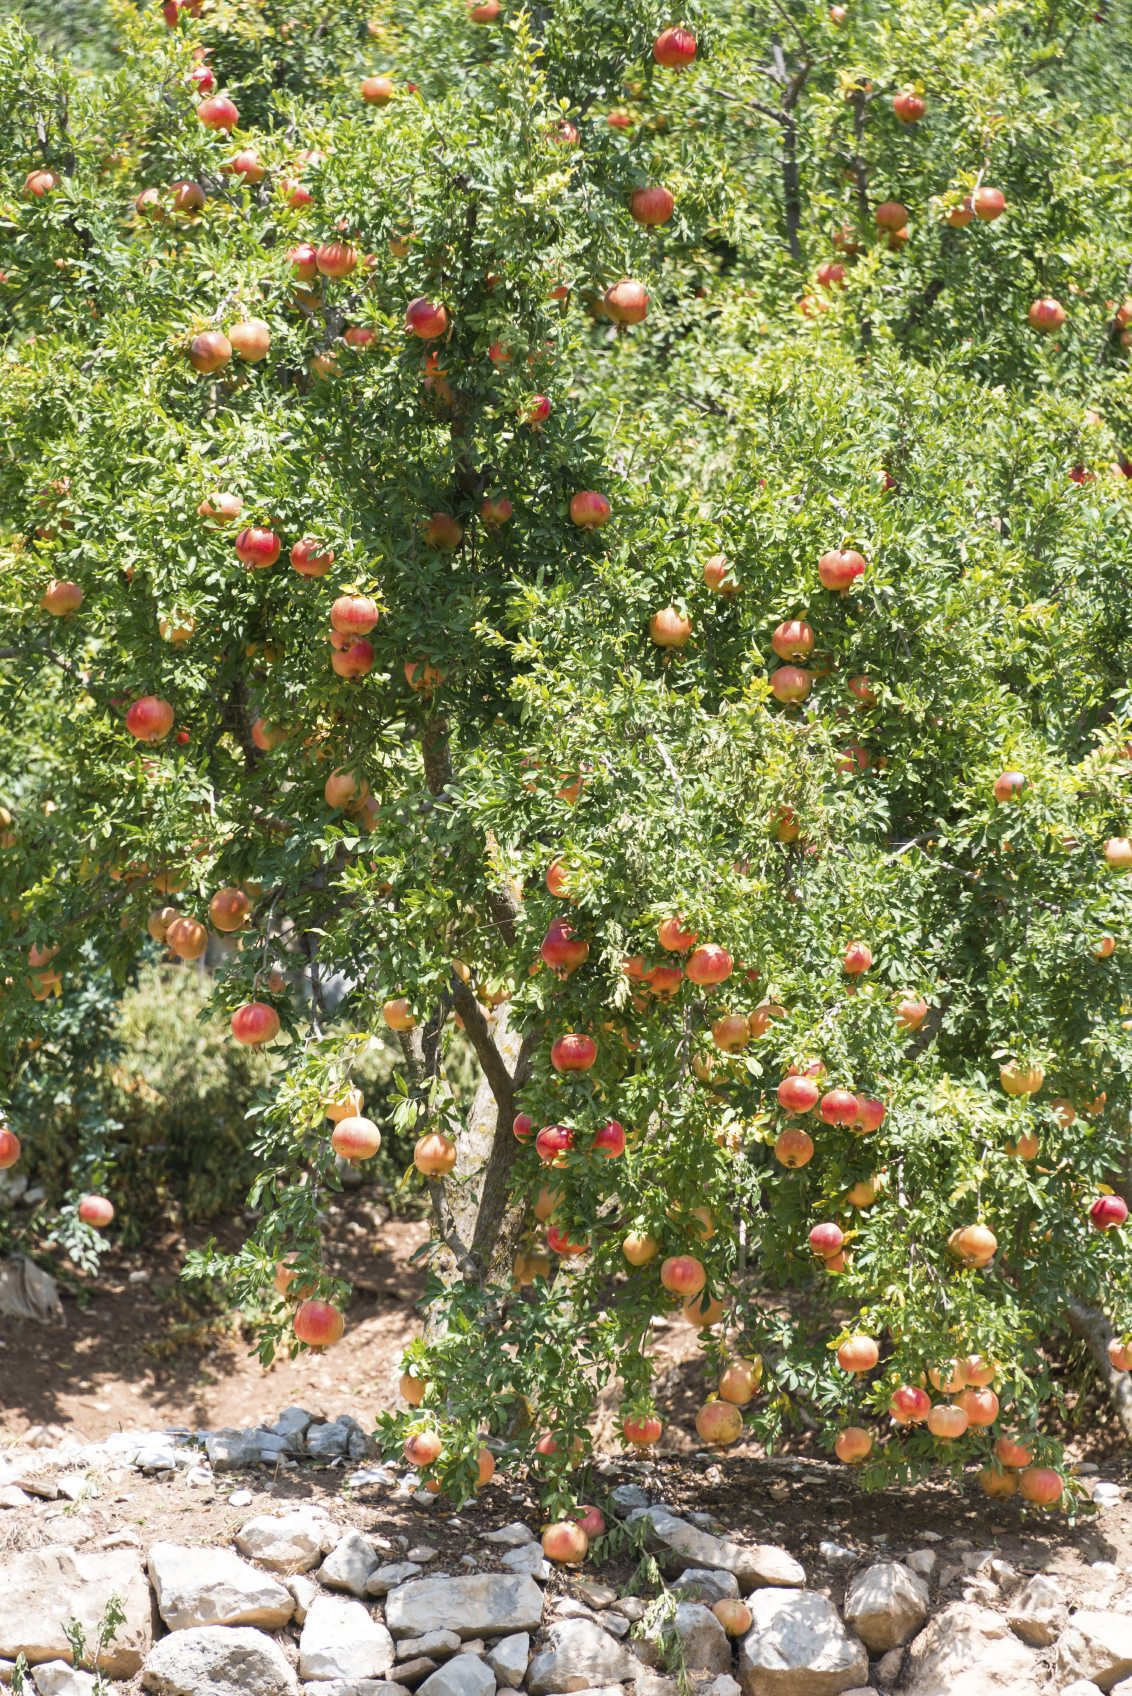 Trimming Pomegranate Trees When And How To Prune A